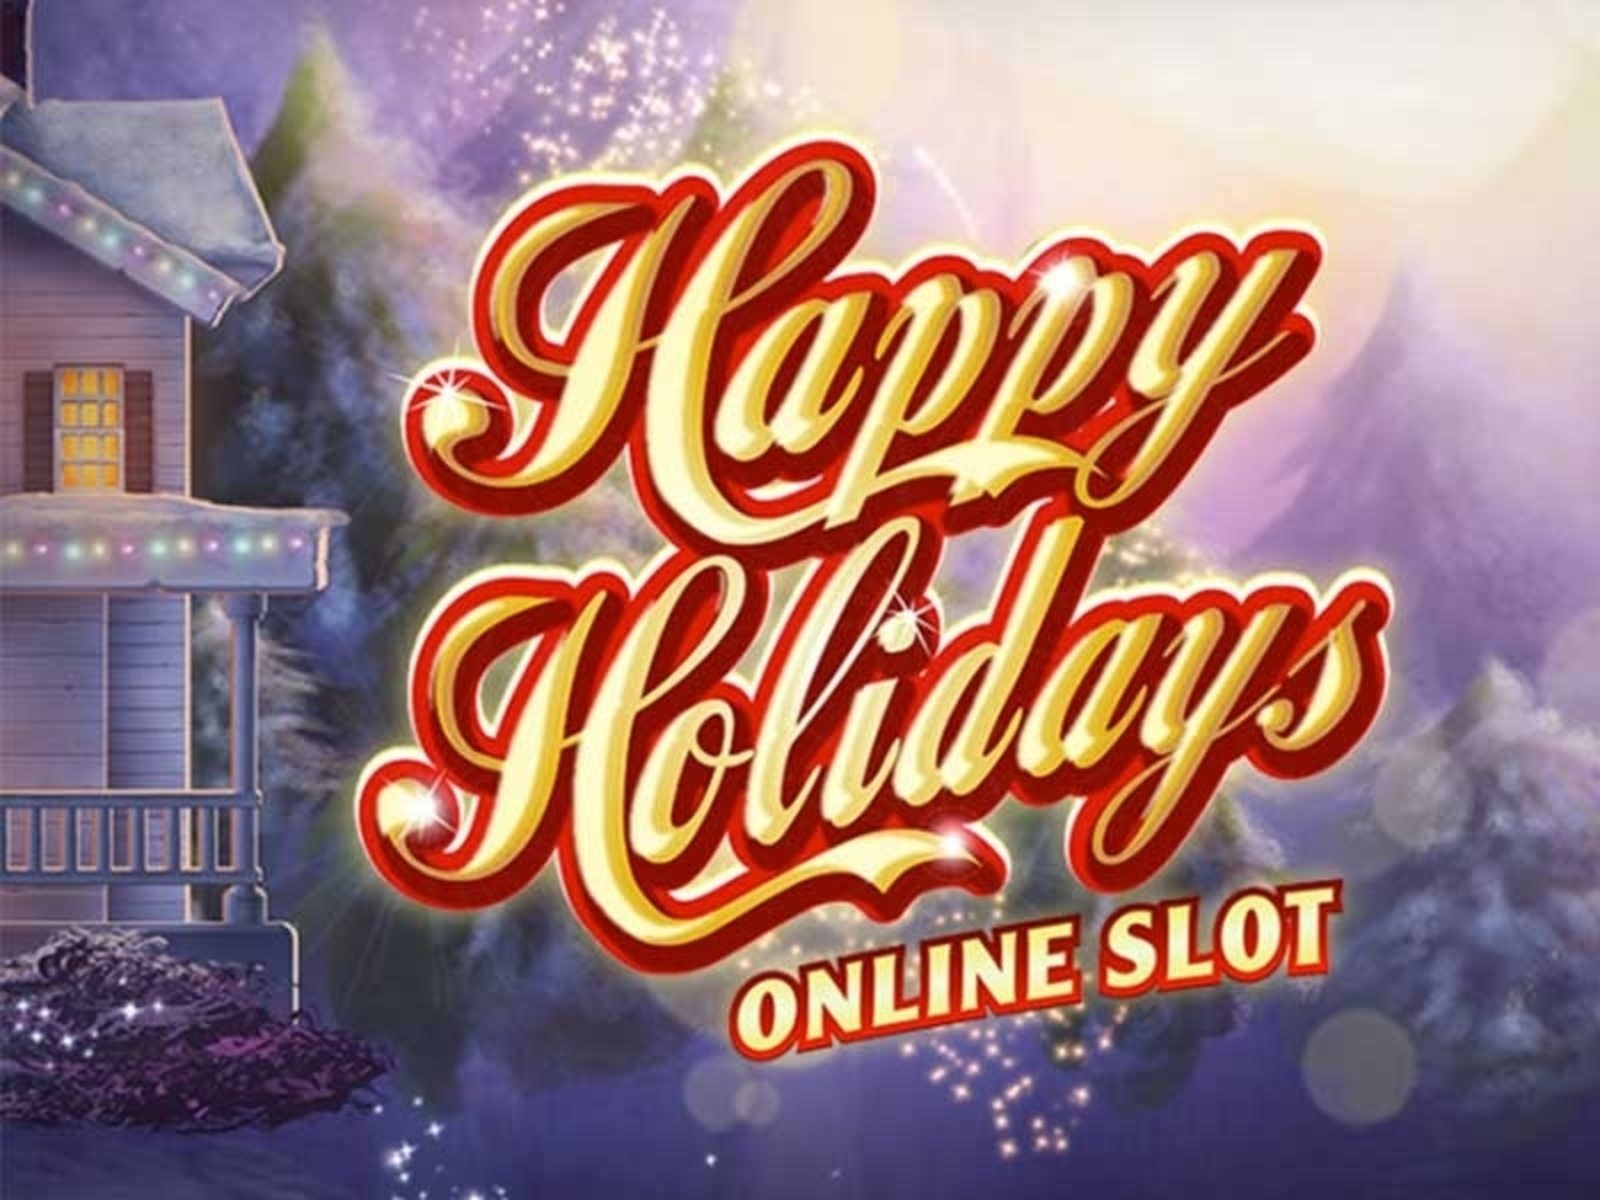 The Happy Holidays Online Slot Demo Game by Microgaming